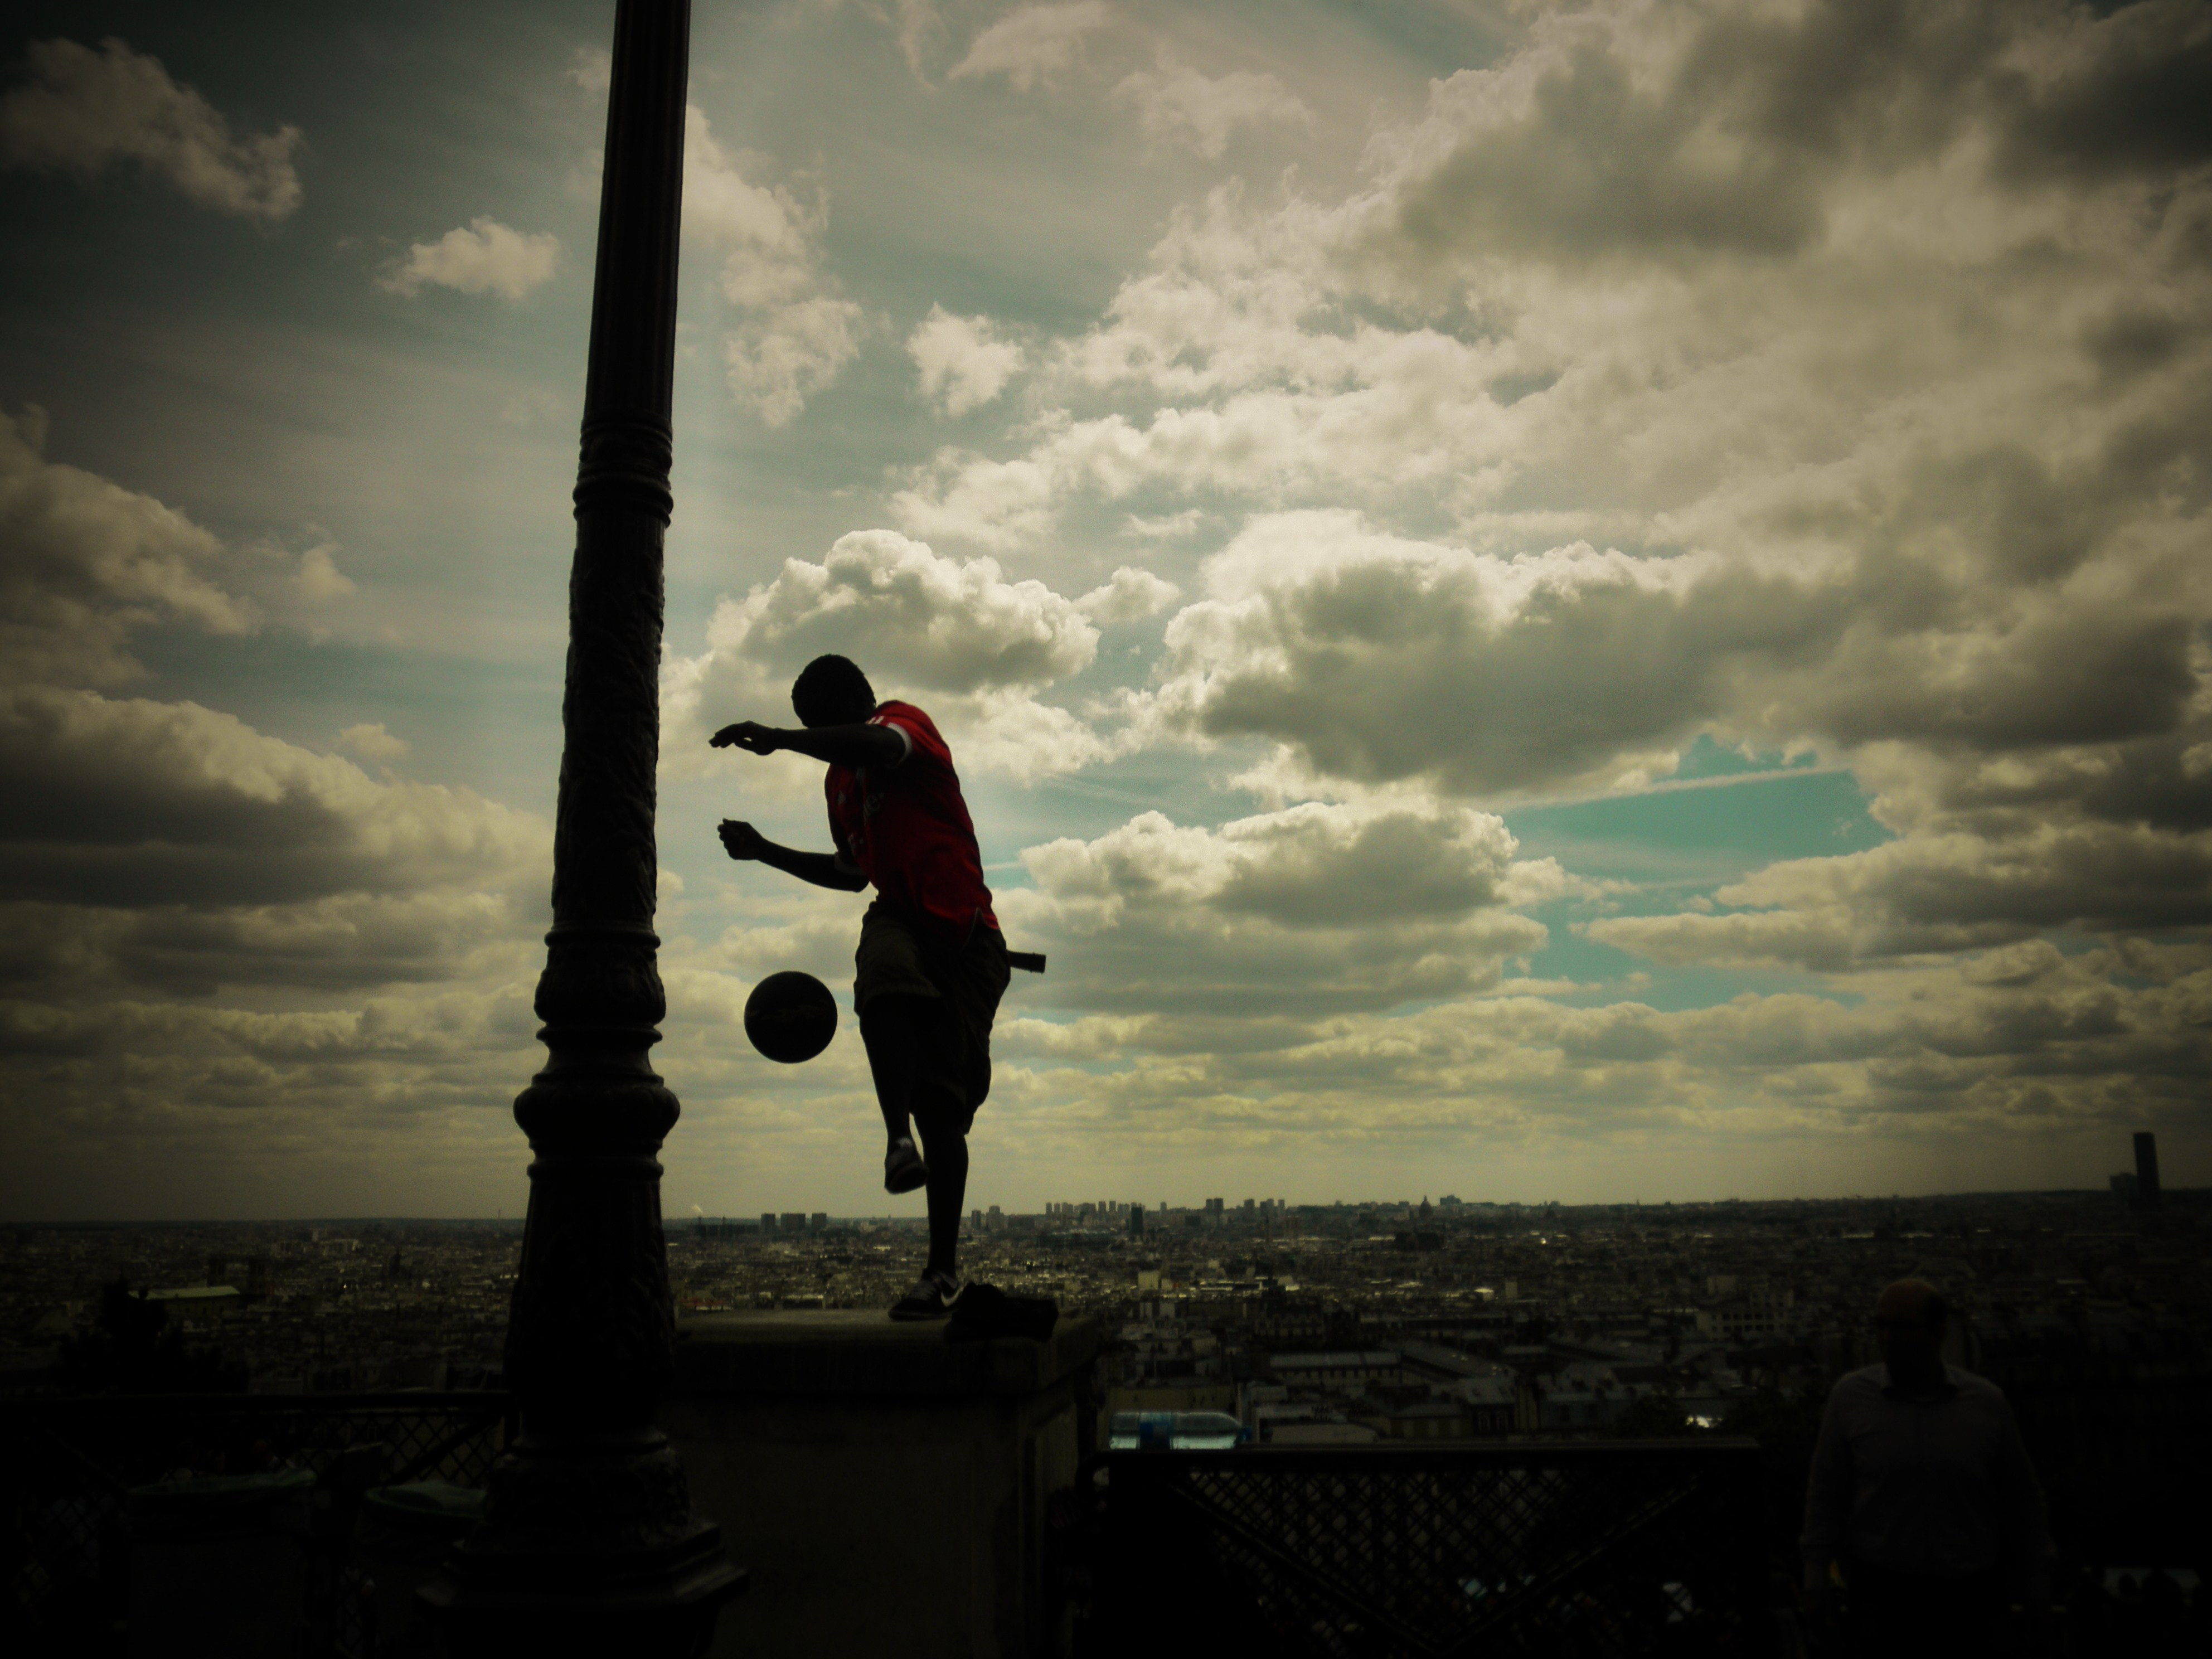 Street Performer in Paris